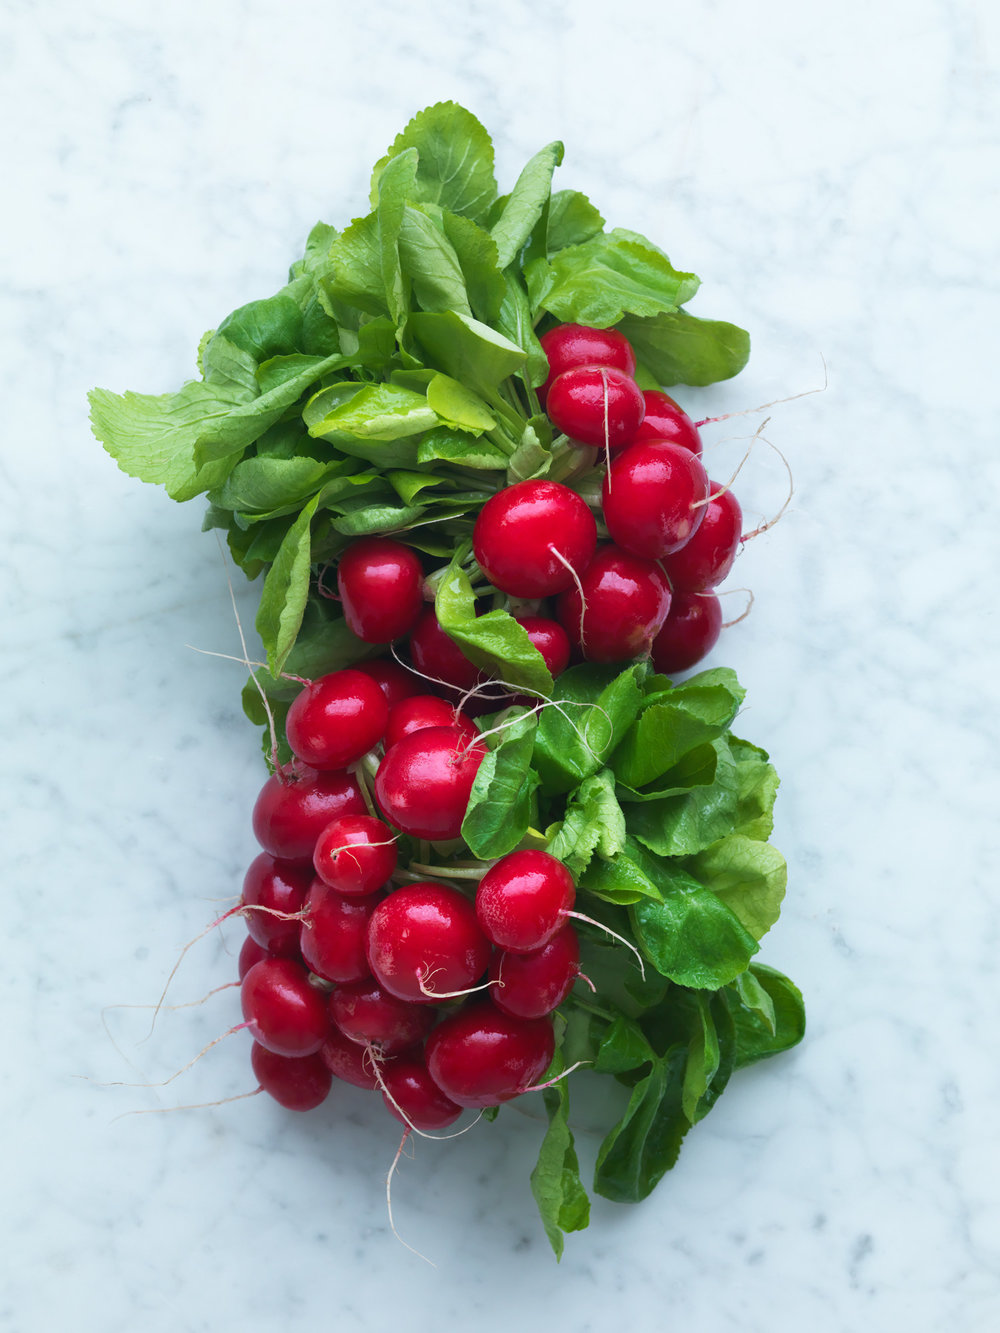 Waitrose_Bestcustomer_Radishes_21.2.18 - 680.jpg